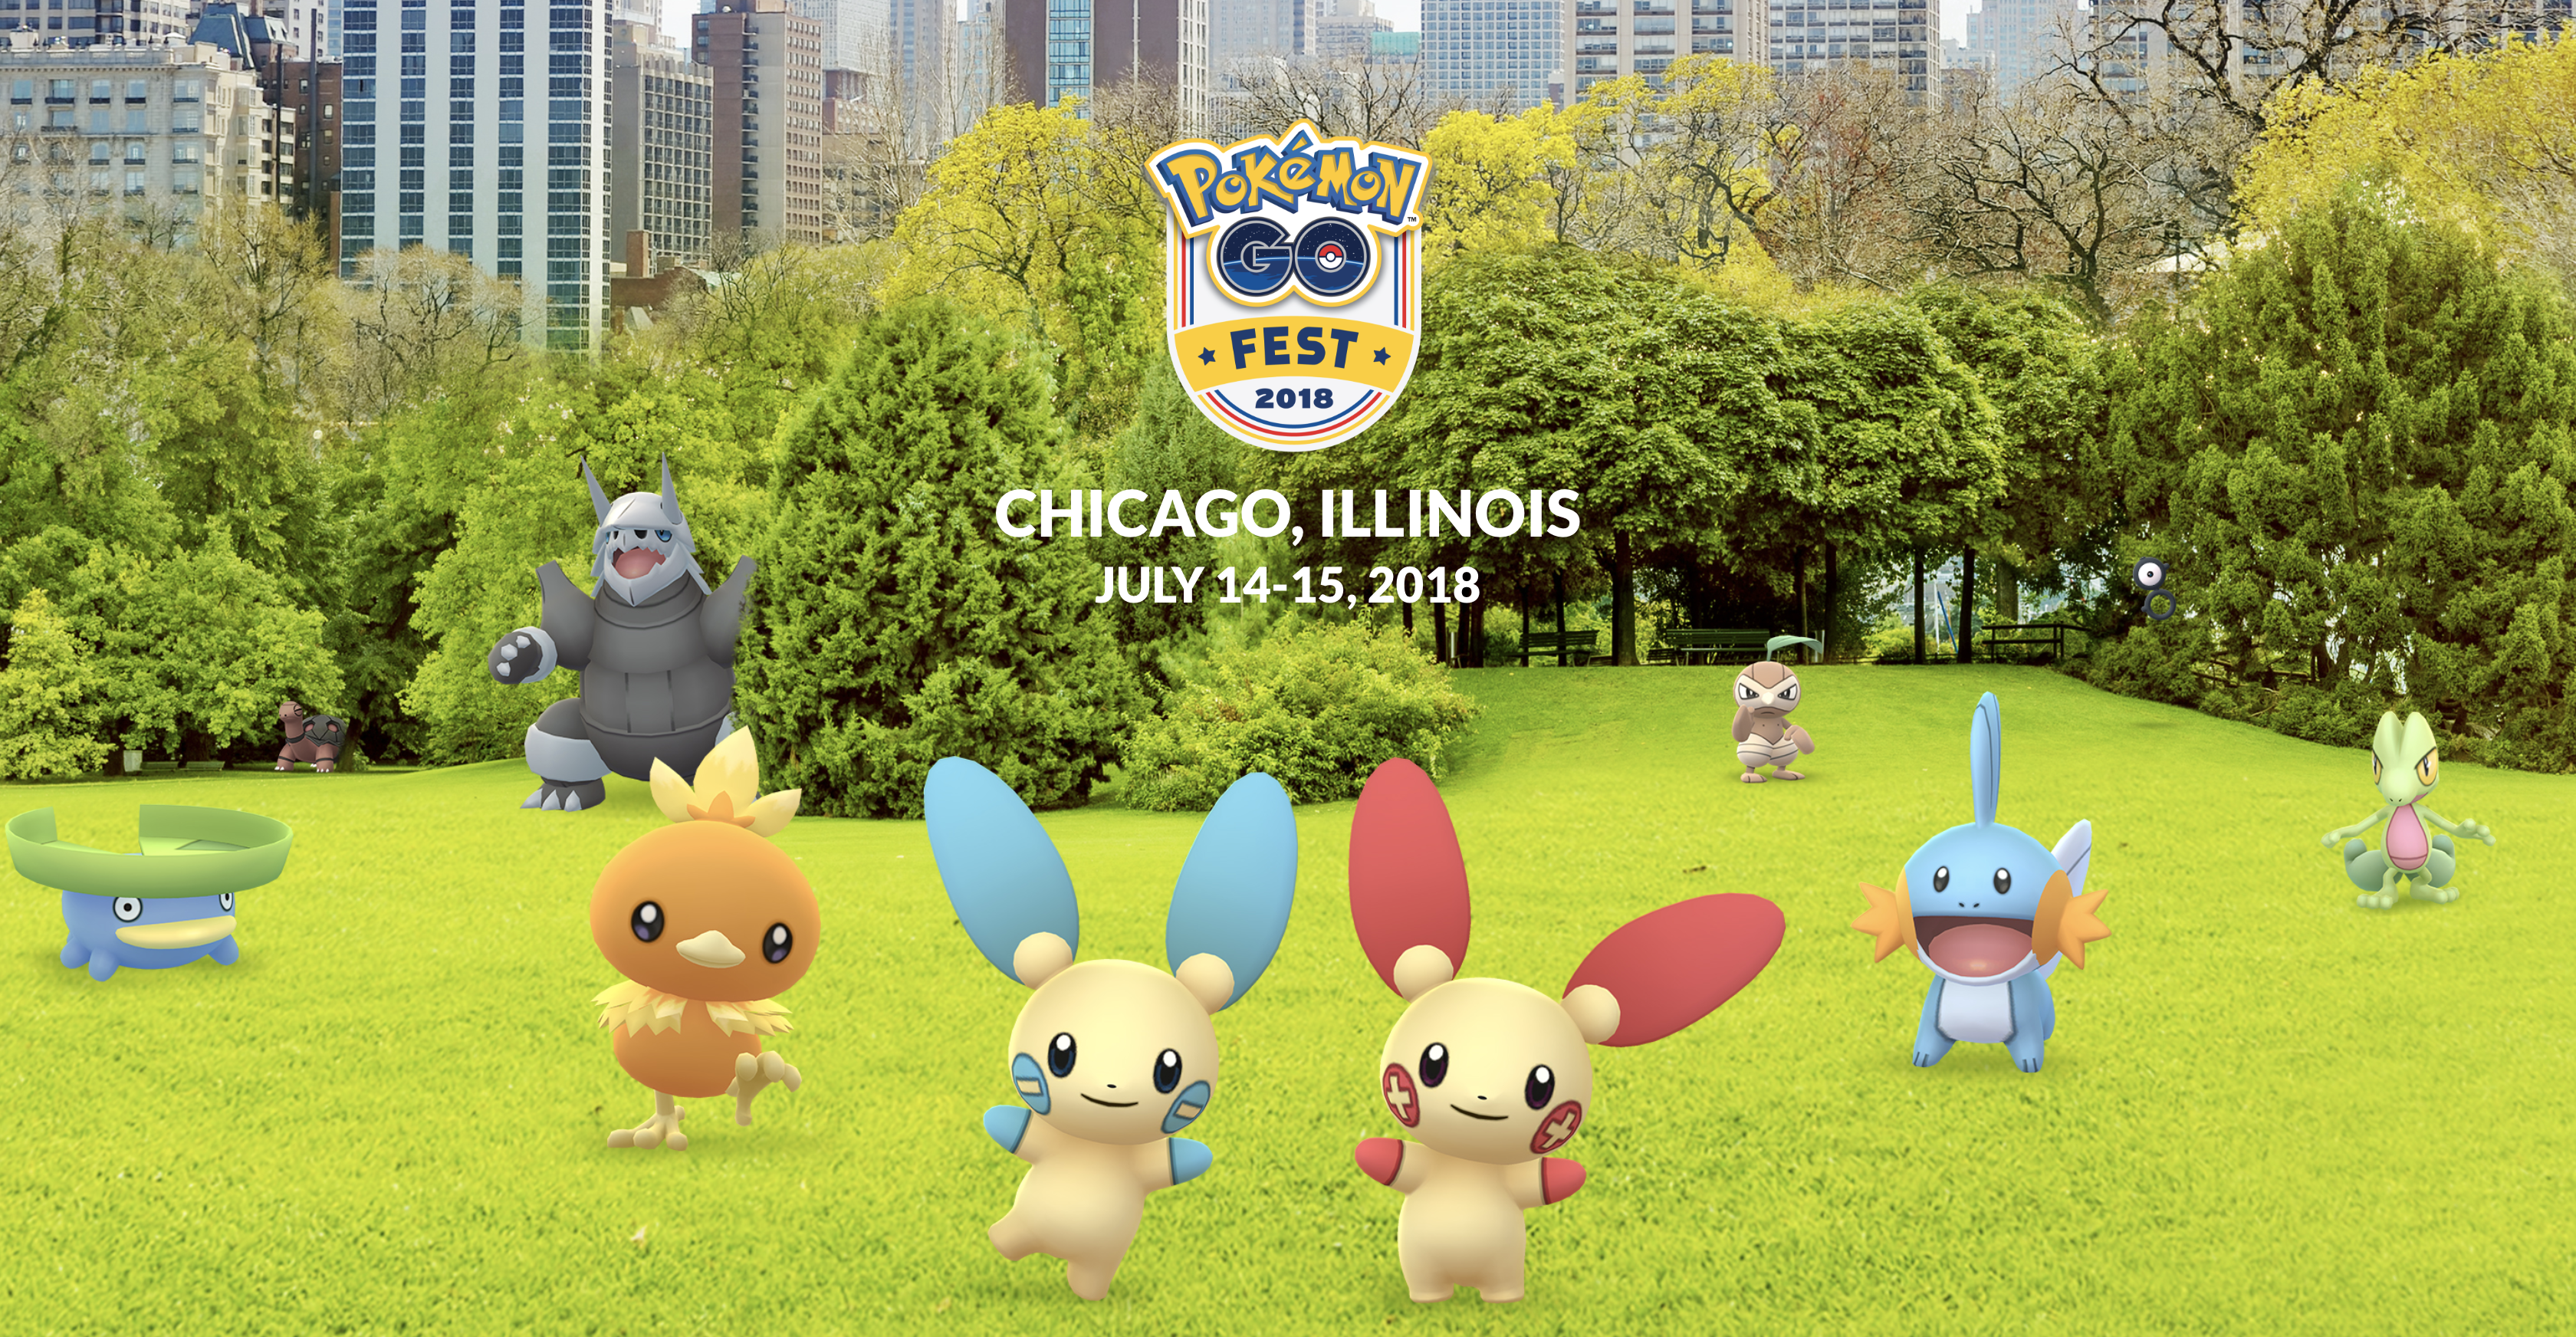 Pokémon GO' Fest 2018: Start Time, Location, Rewards, and More | Inverse